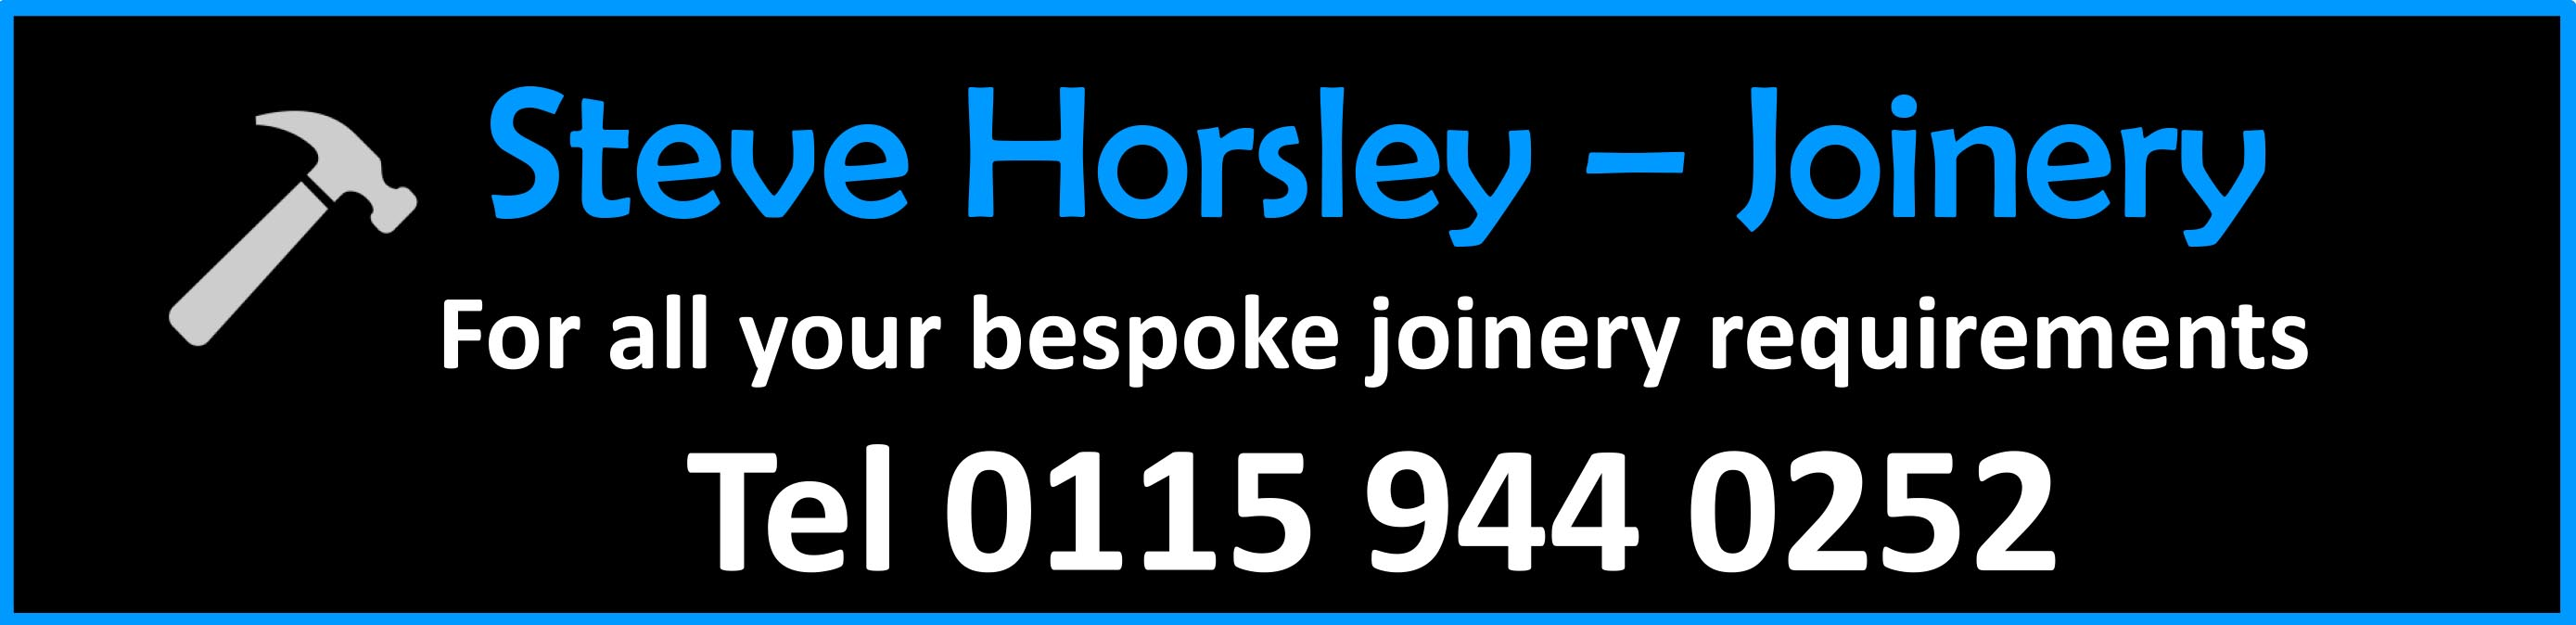 Steve Horsley Joinery